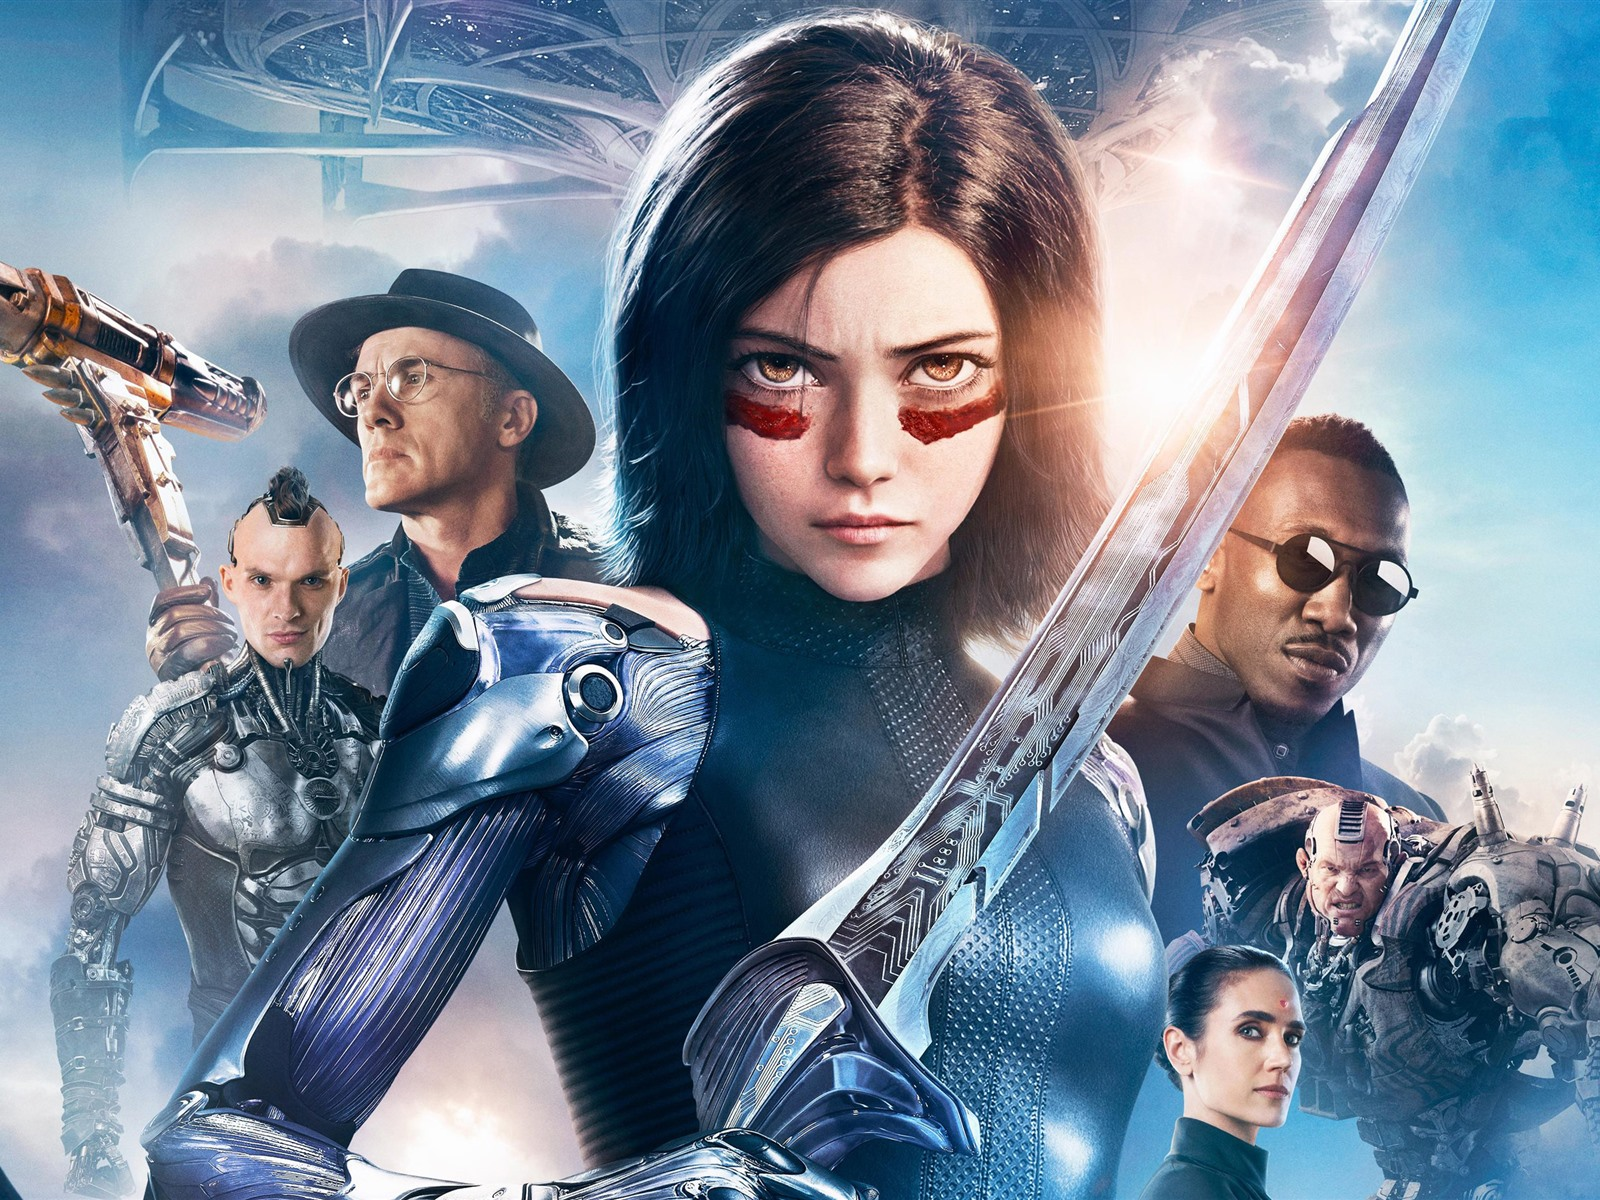 Image Result For Full Movies Alita Battle Angel